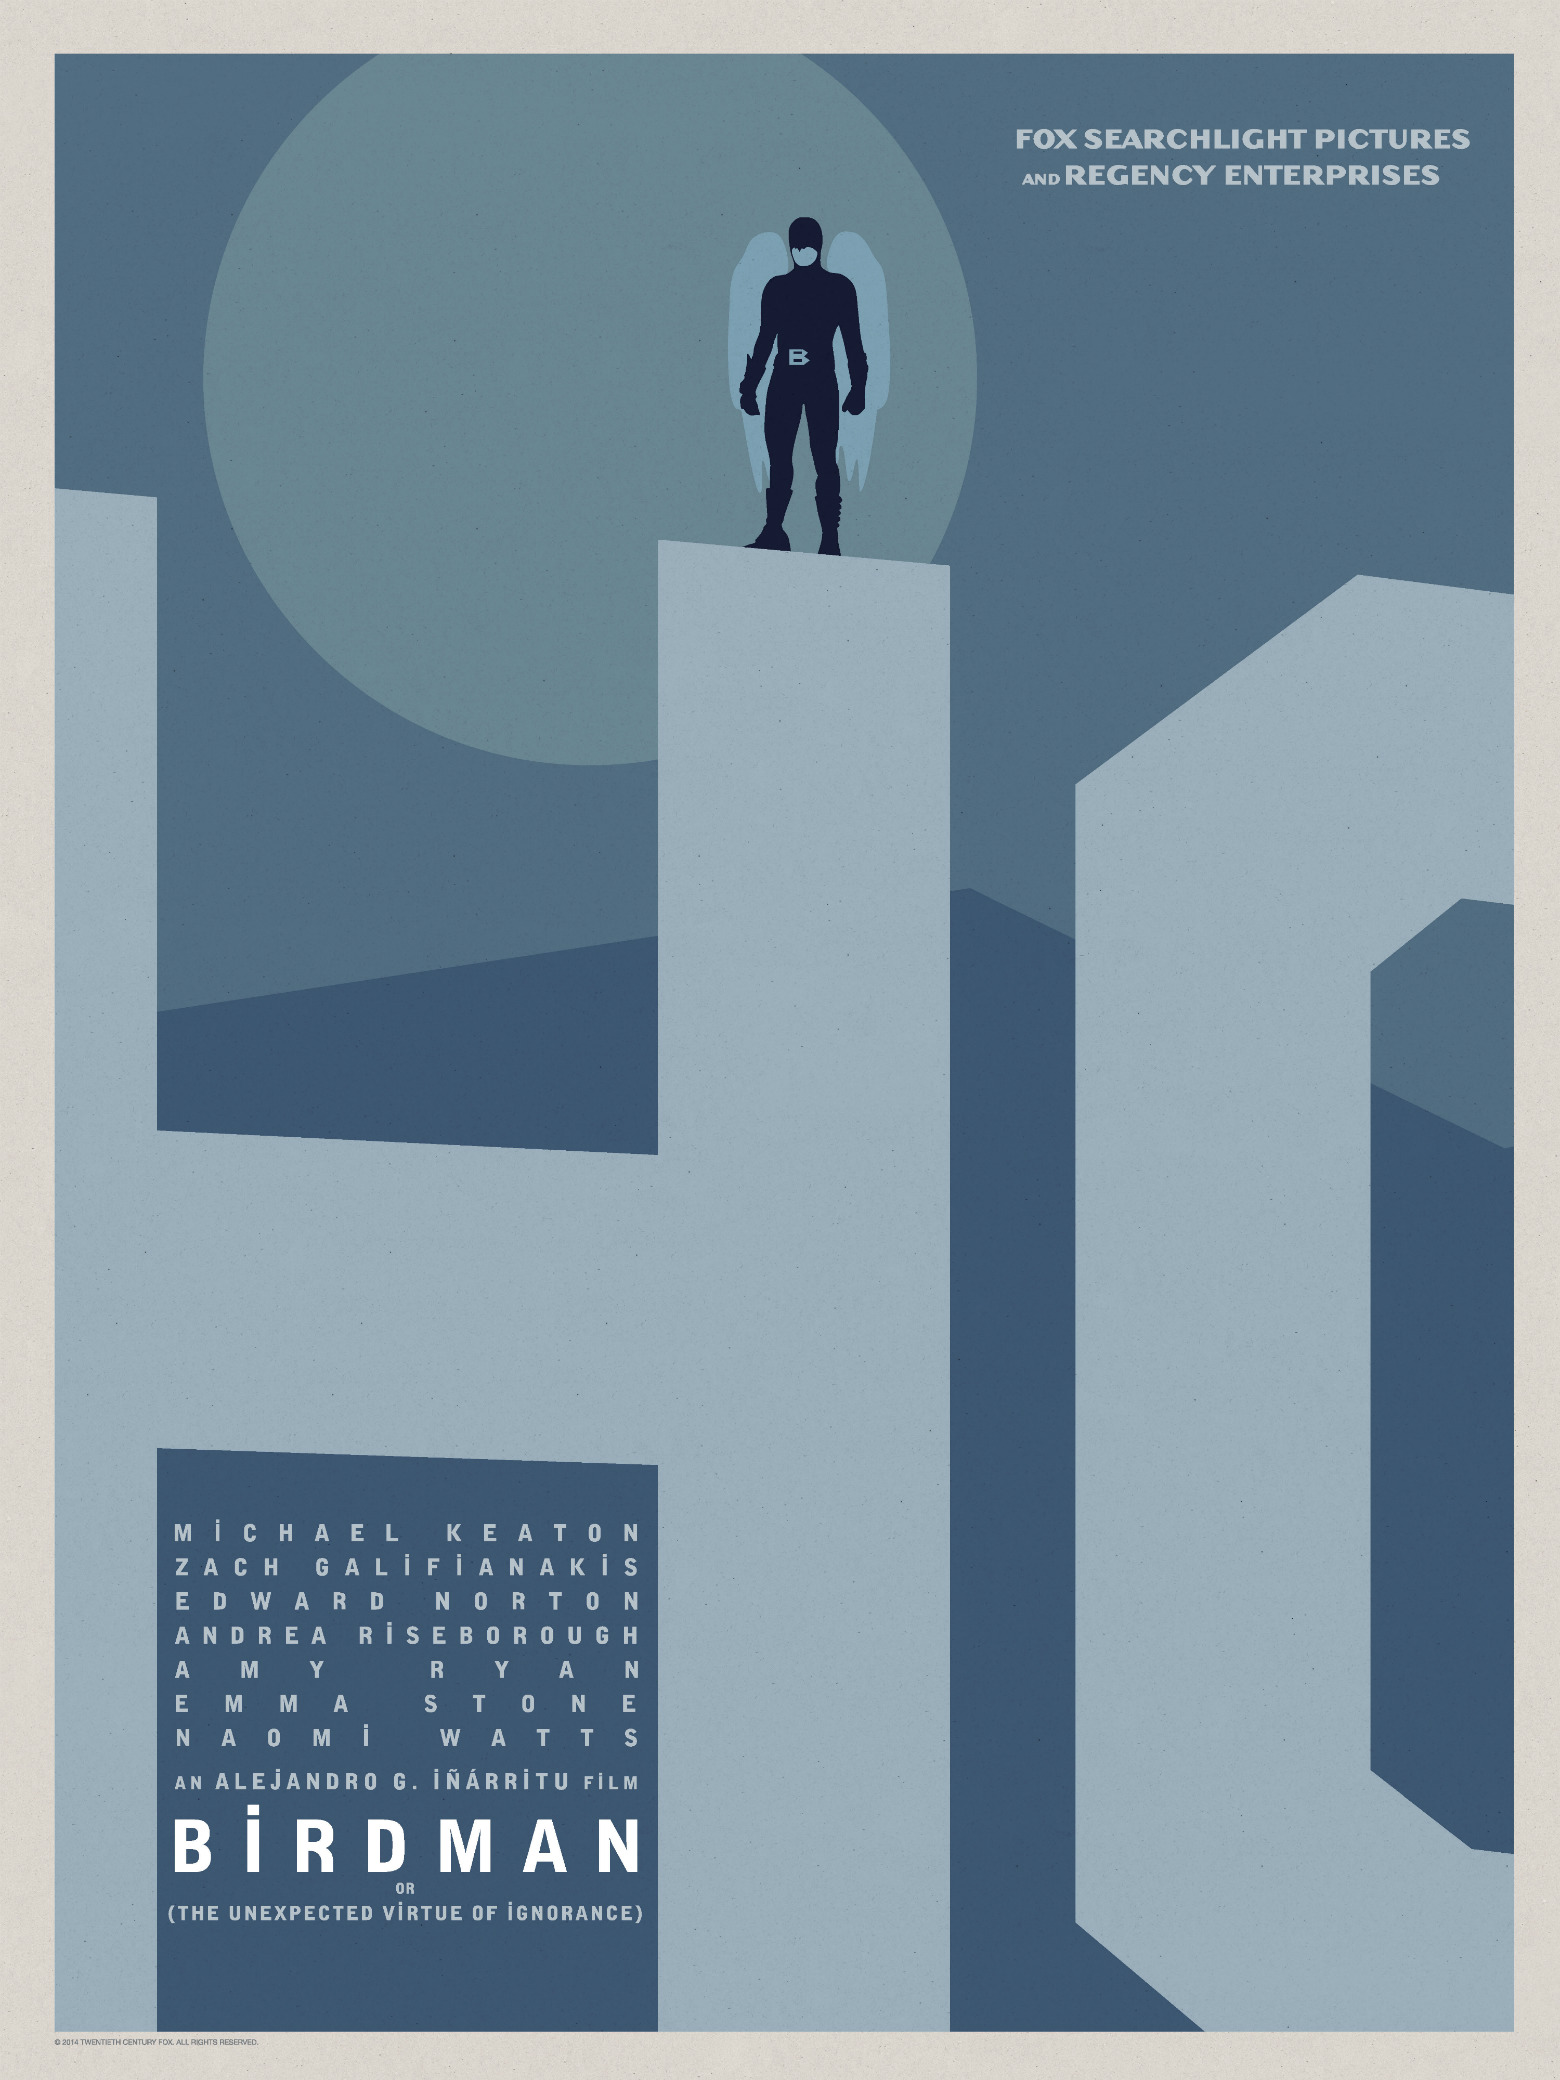 Birdman-Official Poster Minimalist XLG-13OUTUBRO2014-04